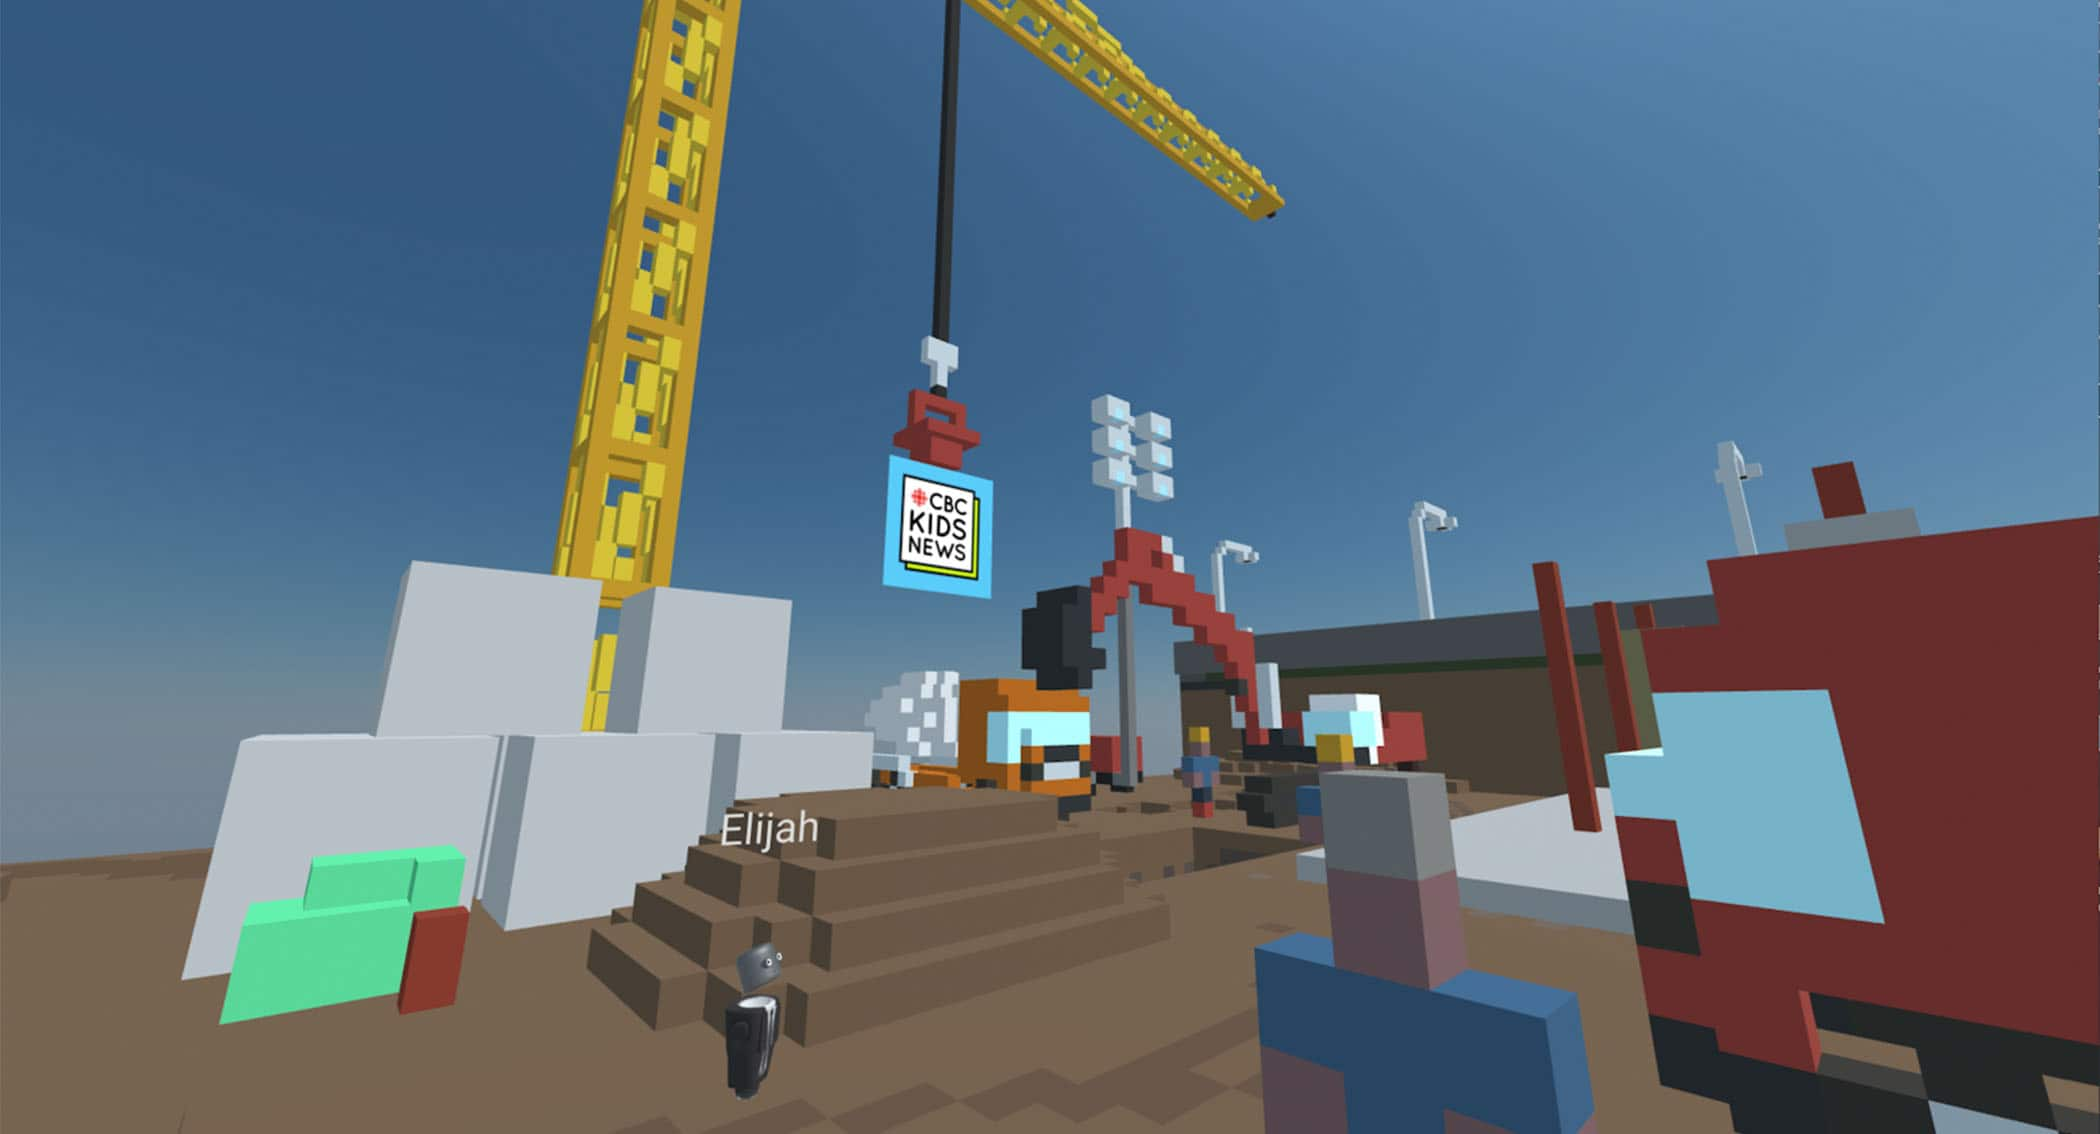 CBC Kids News is building a virtual reality set, here's what it looks like so far.